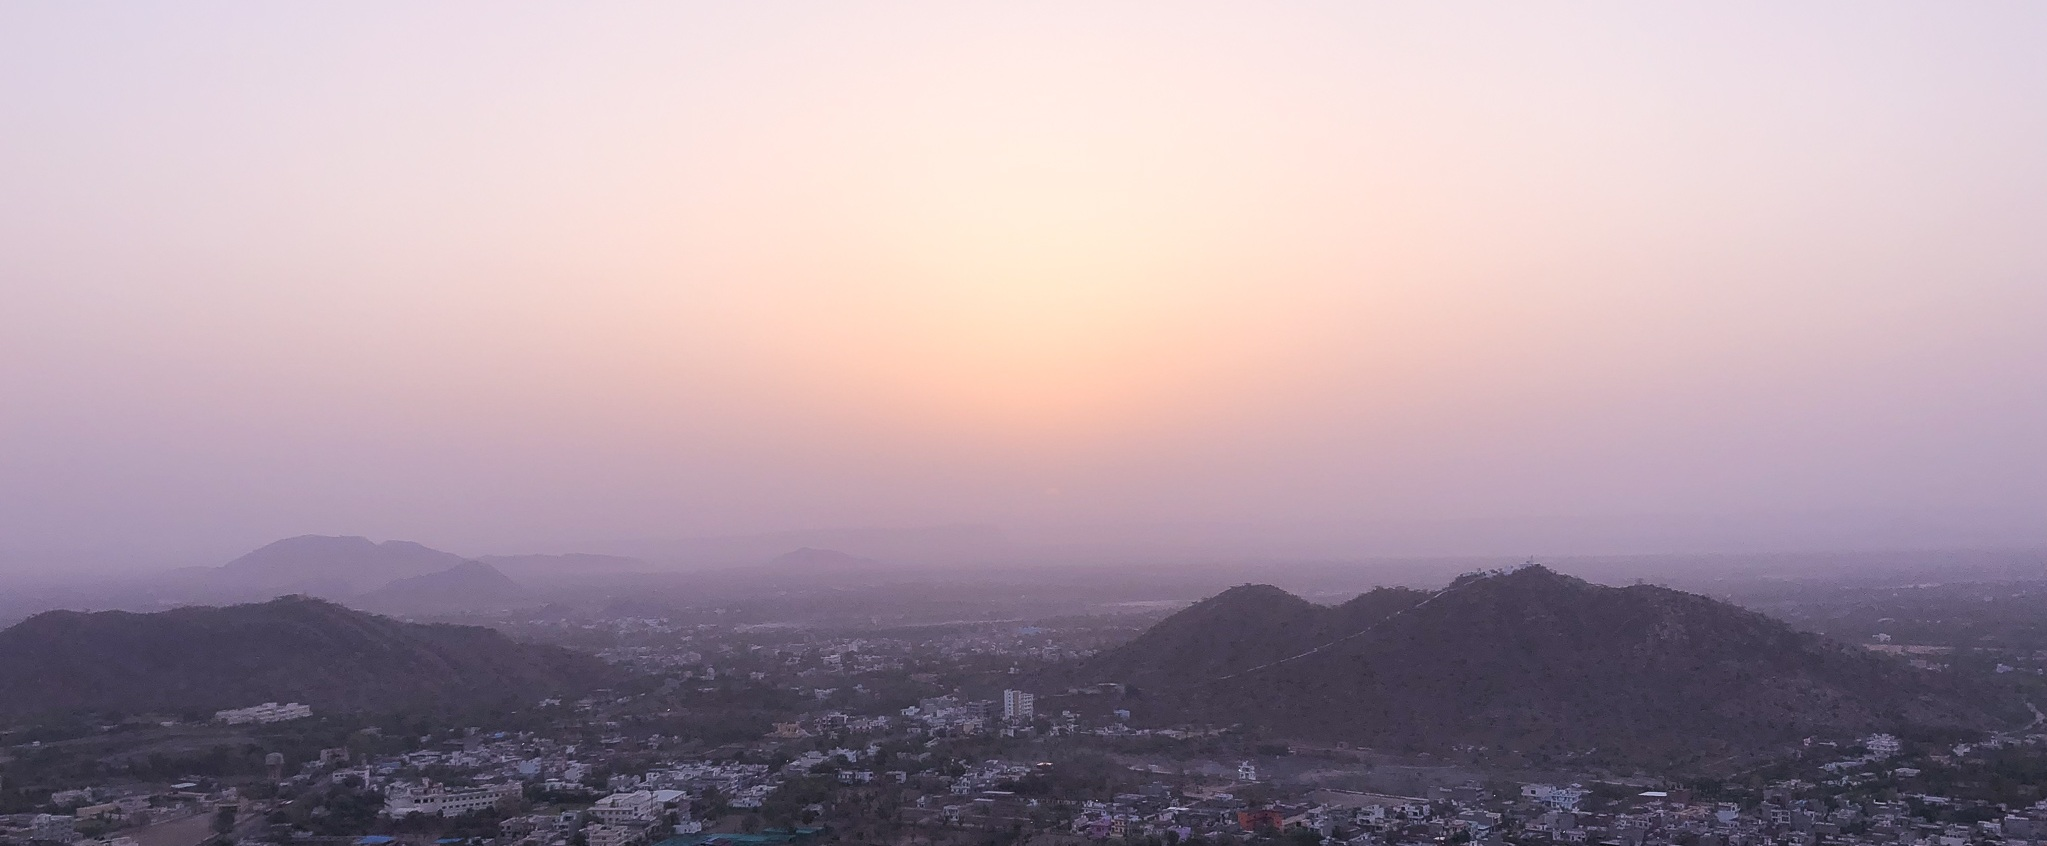 Jaipur_Sunrise_AMBERFORT.jpg